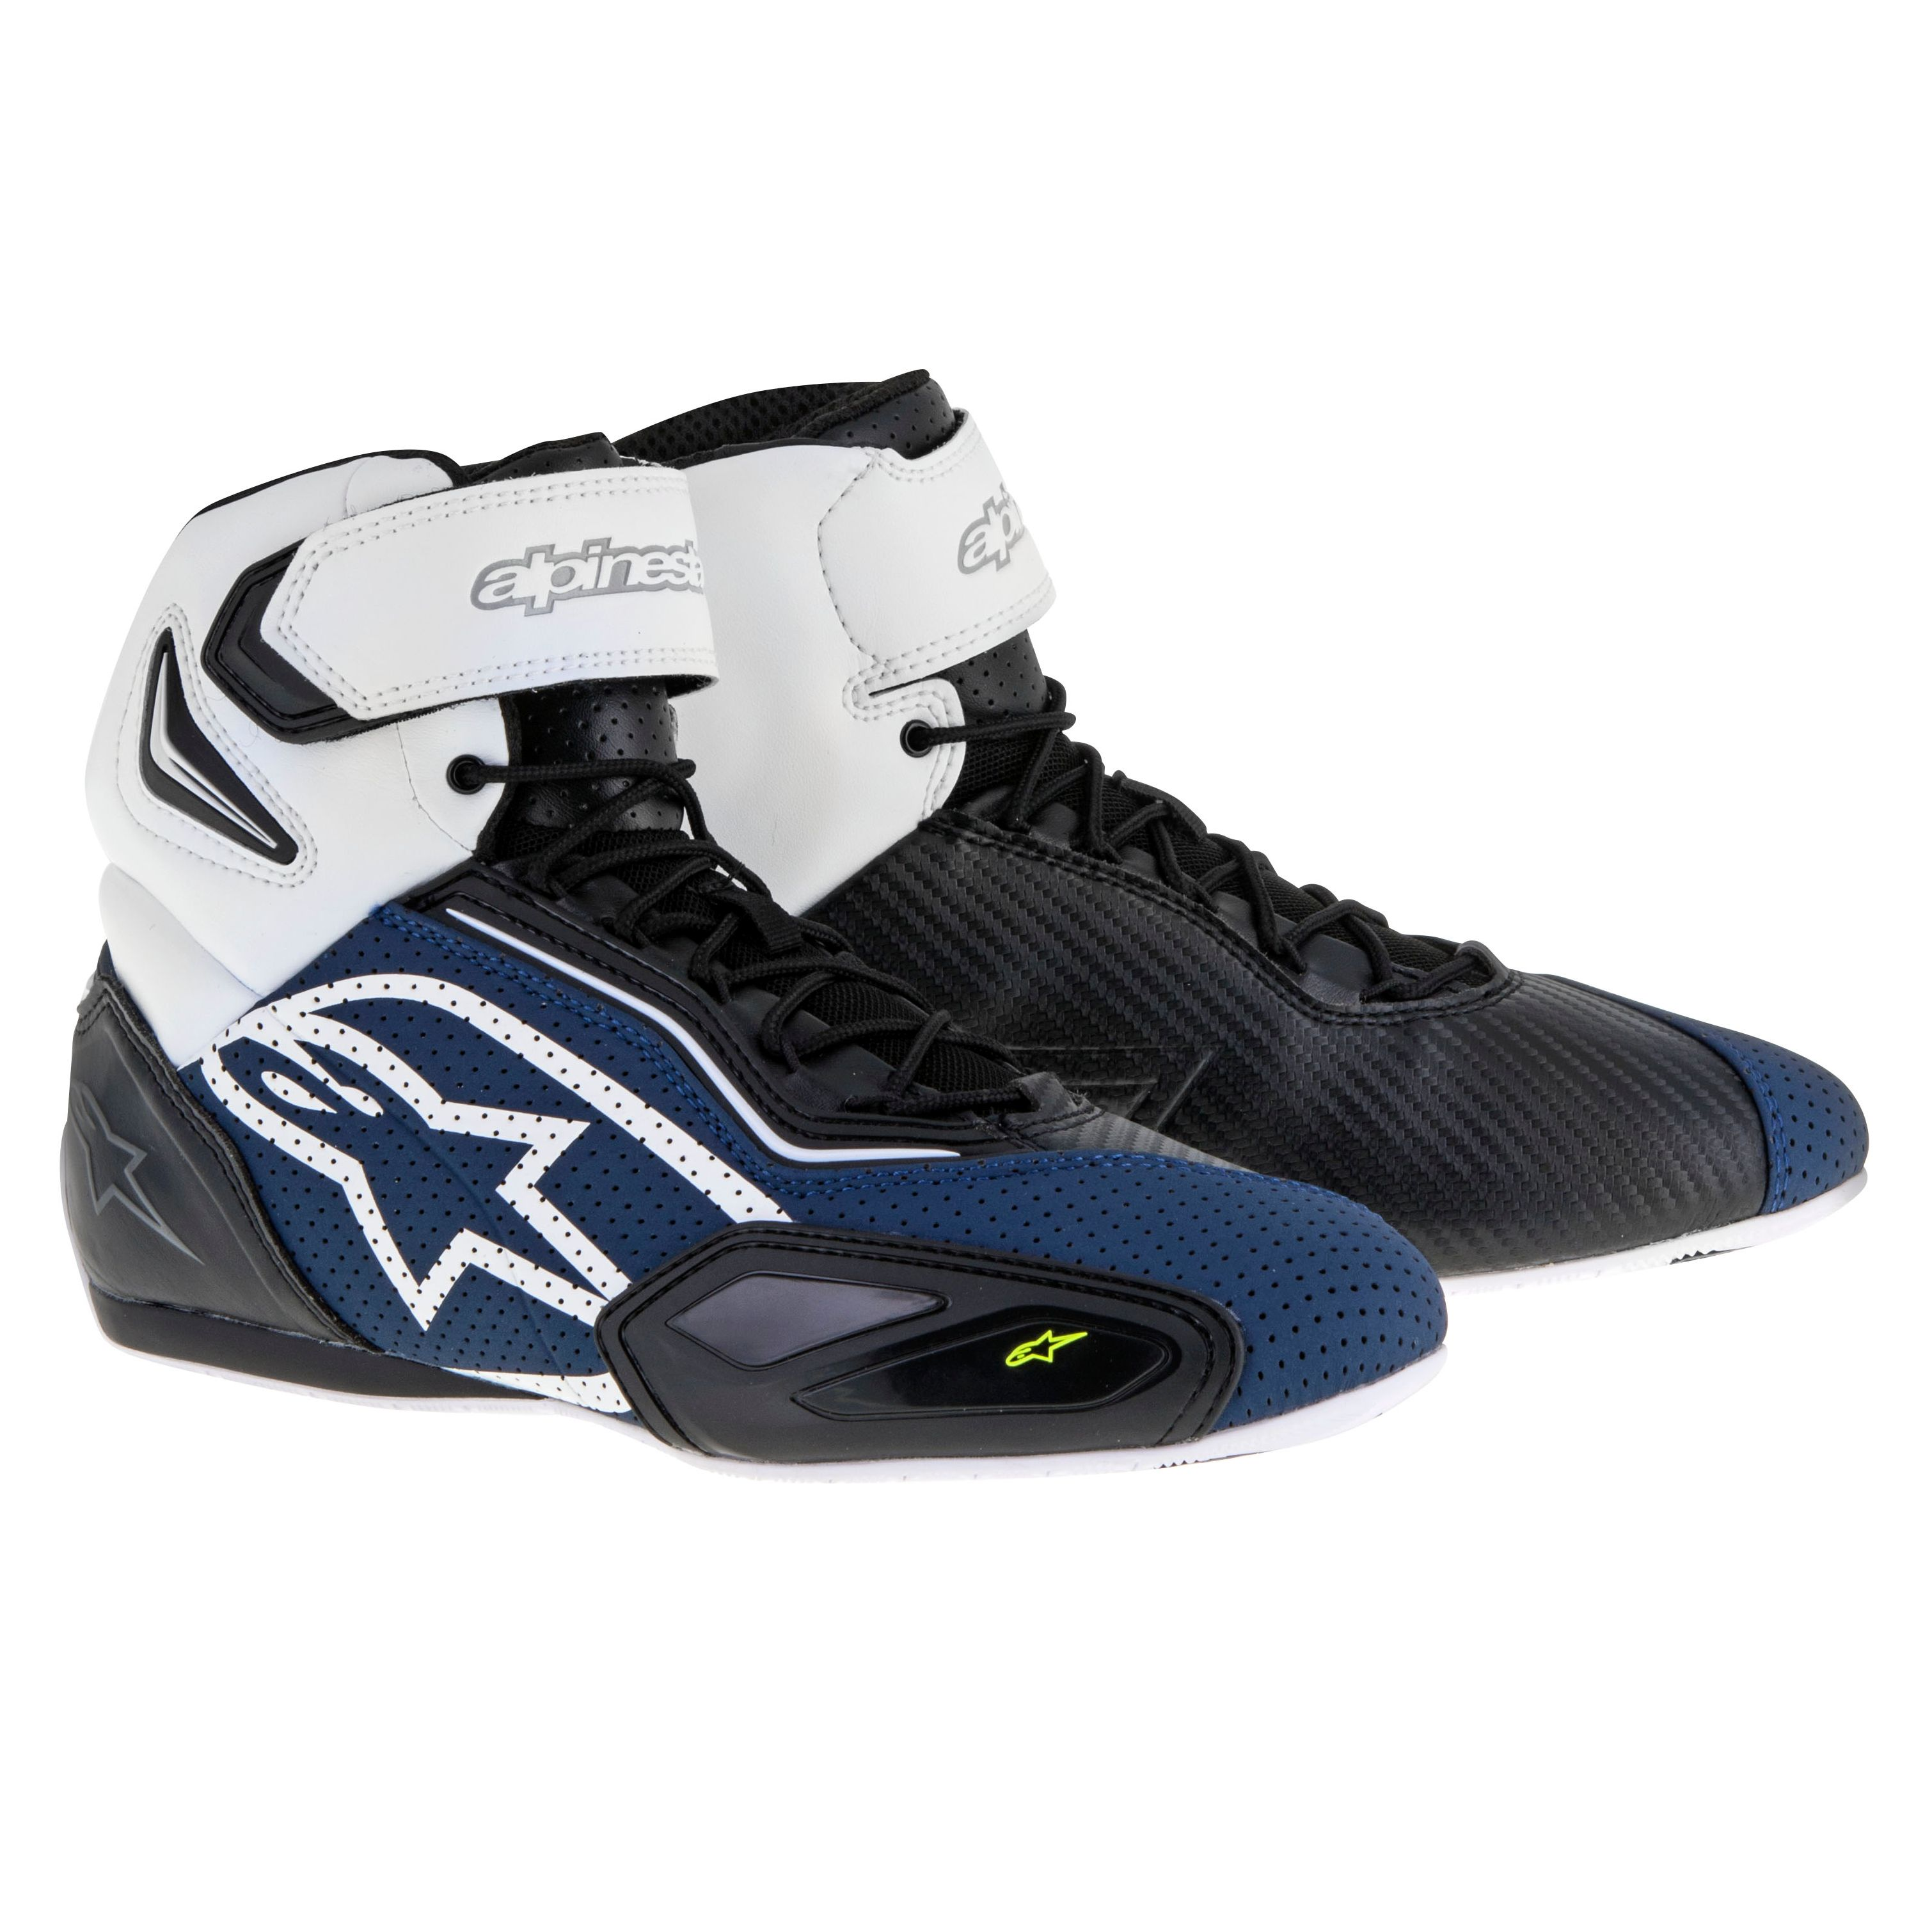 Bottes ALPINESTARS Faster-2 Vented Black / Navy / White / Yellow Fluo 8.5 (EU 41) t3KroXwp